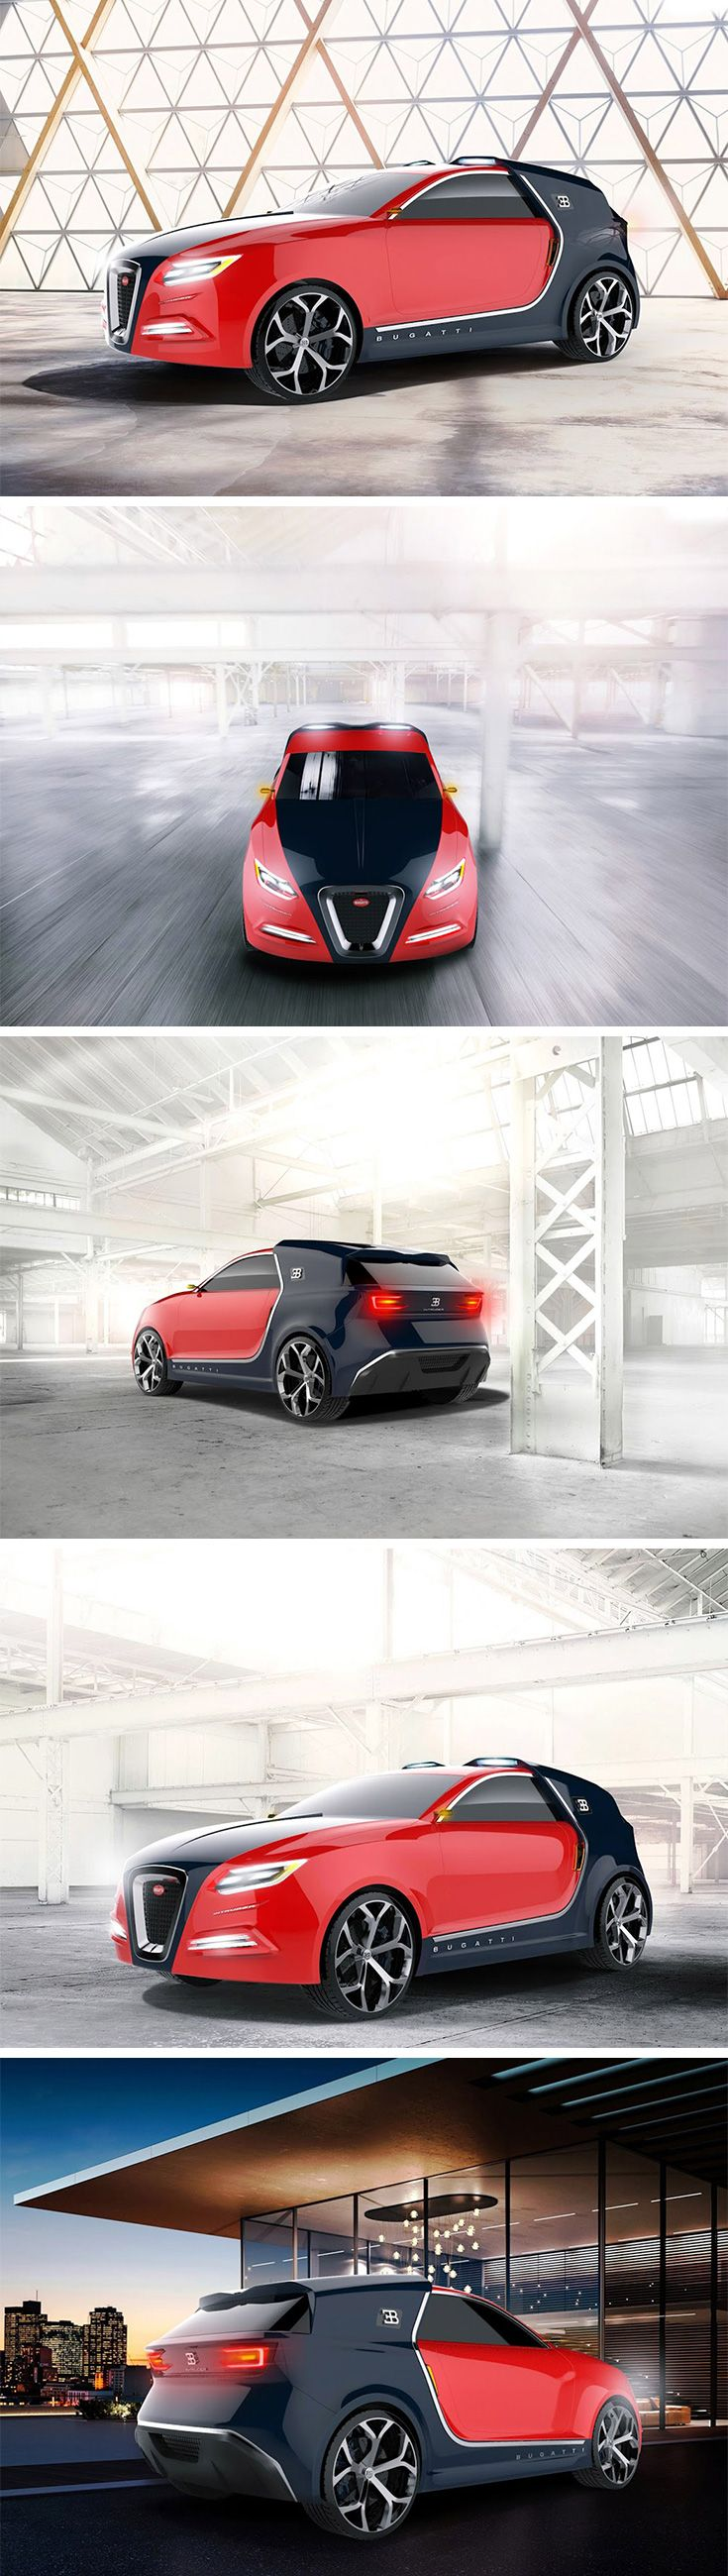 The Intruder concept explores what we might expect in the way of an SUV from the legendary sports car brand Bugatti. The Intruder has channeled the same signature aesthetic that looks as if one car is emerging from the nose of another car. You'll also find the familiar, though slightly elongated, side vents and grill.